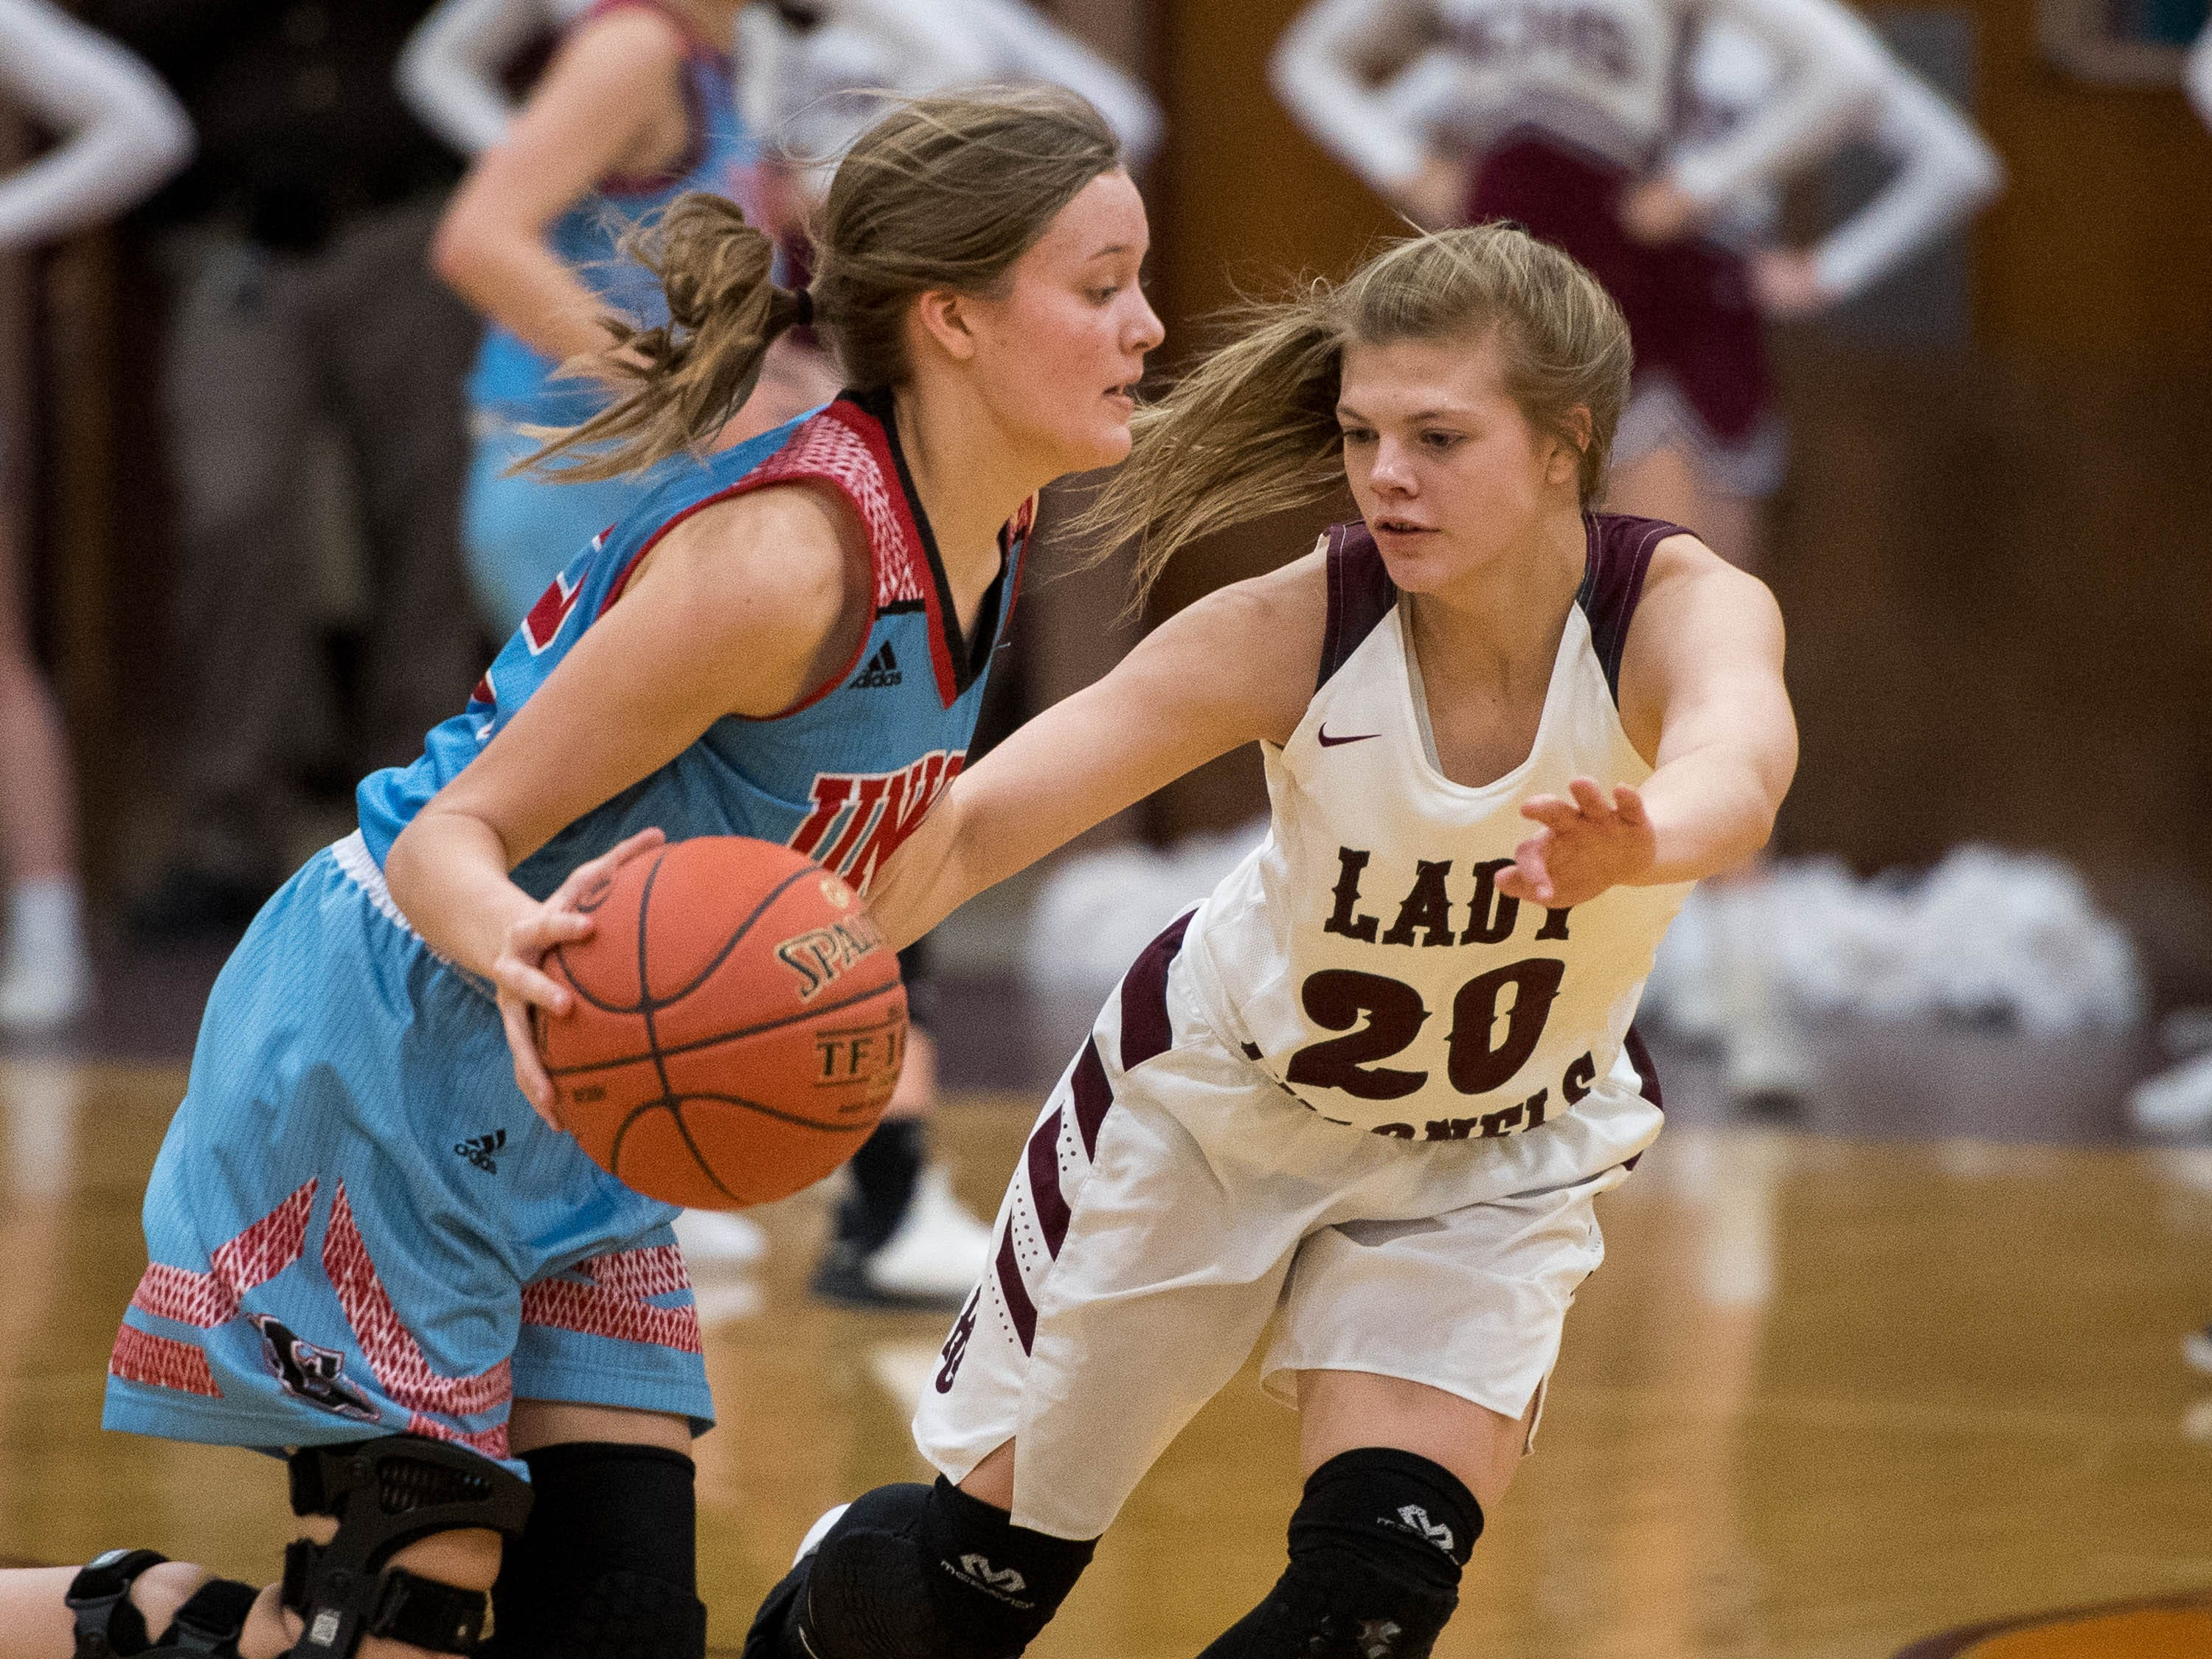 Raelle Beaven (12) drives against defense from Henderson County's Kaytlan Kemp (20) as district rivals Union County Bravettes play the Henderson County Lady Colonels at Colonel Gym in Henderson Tuesday, January 29, 2019.